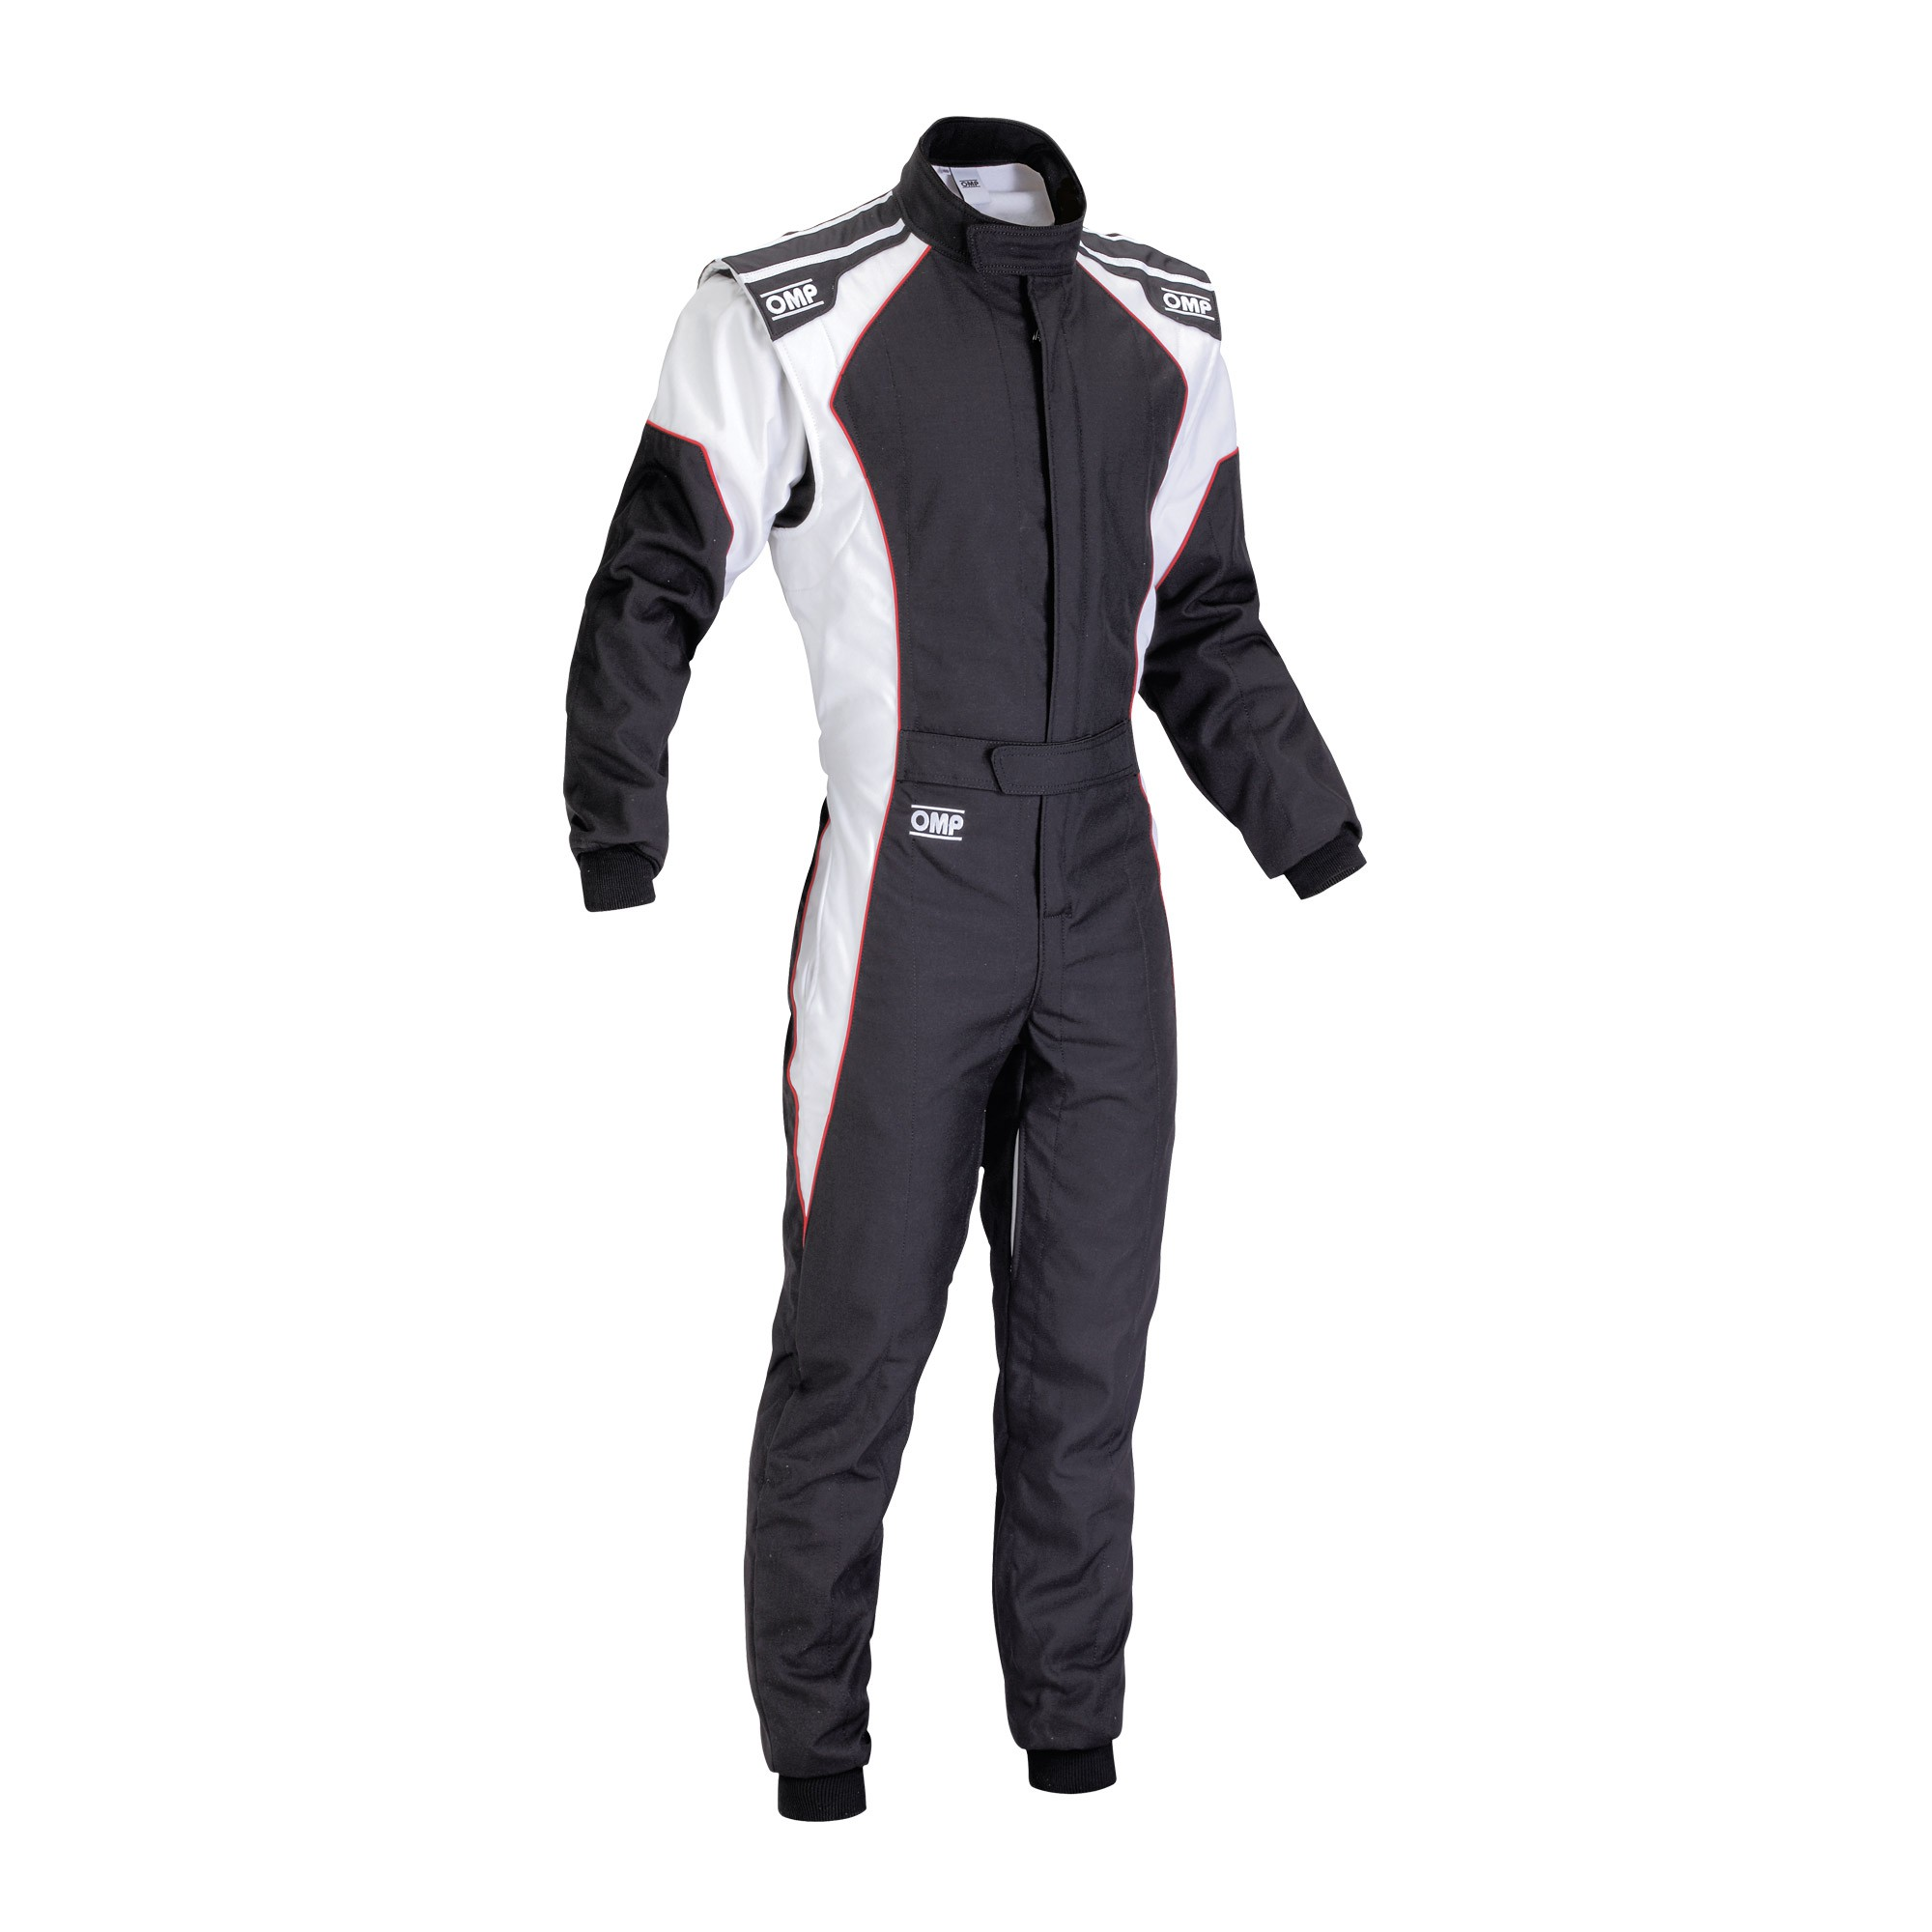 OMP KS-3 Karting Suit